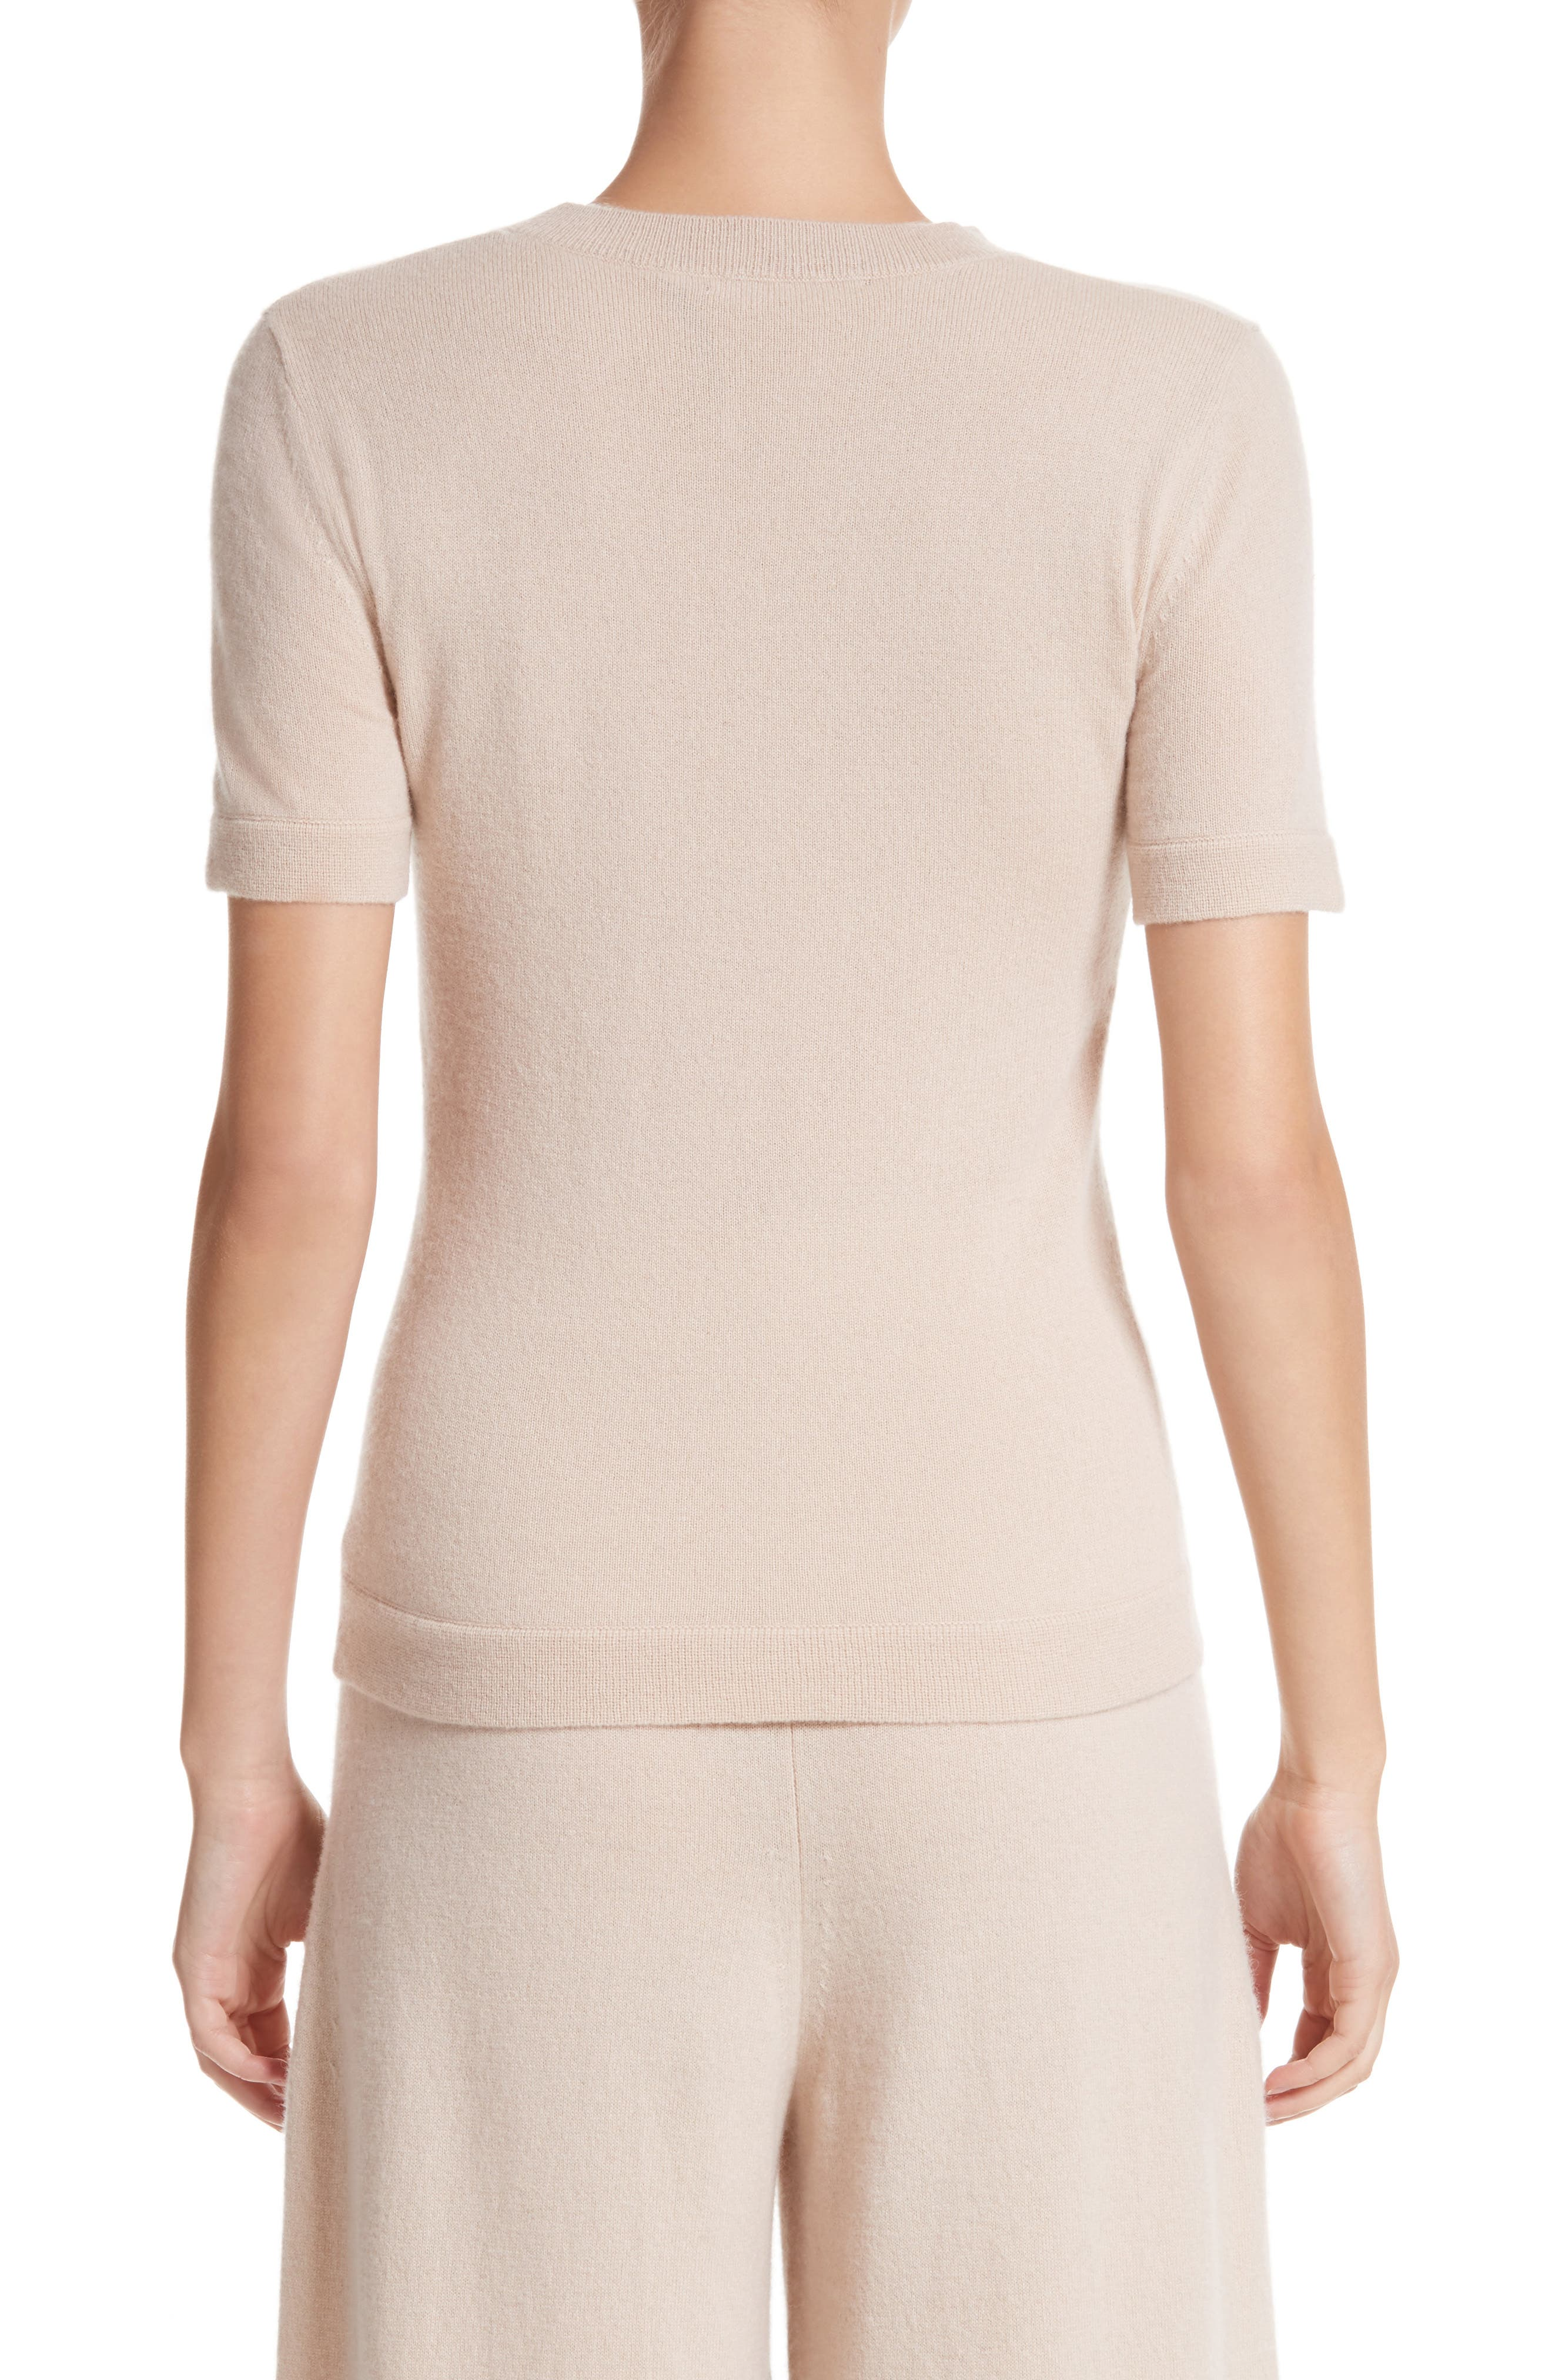 Cashmere Tee,                             Alternate thumbnail 2, color,                             Fawn